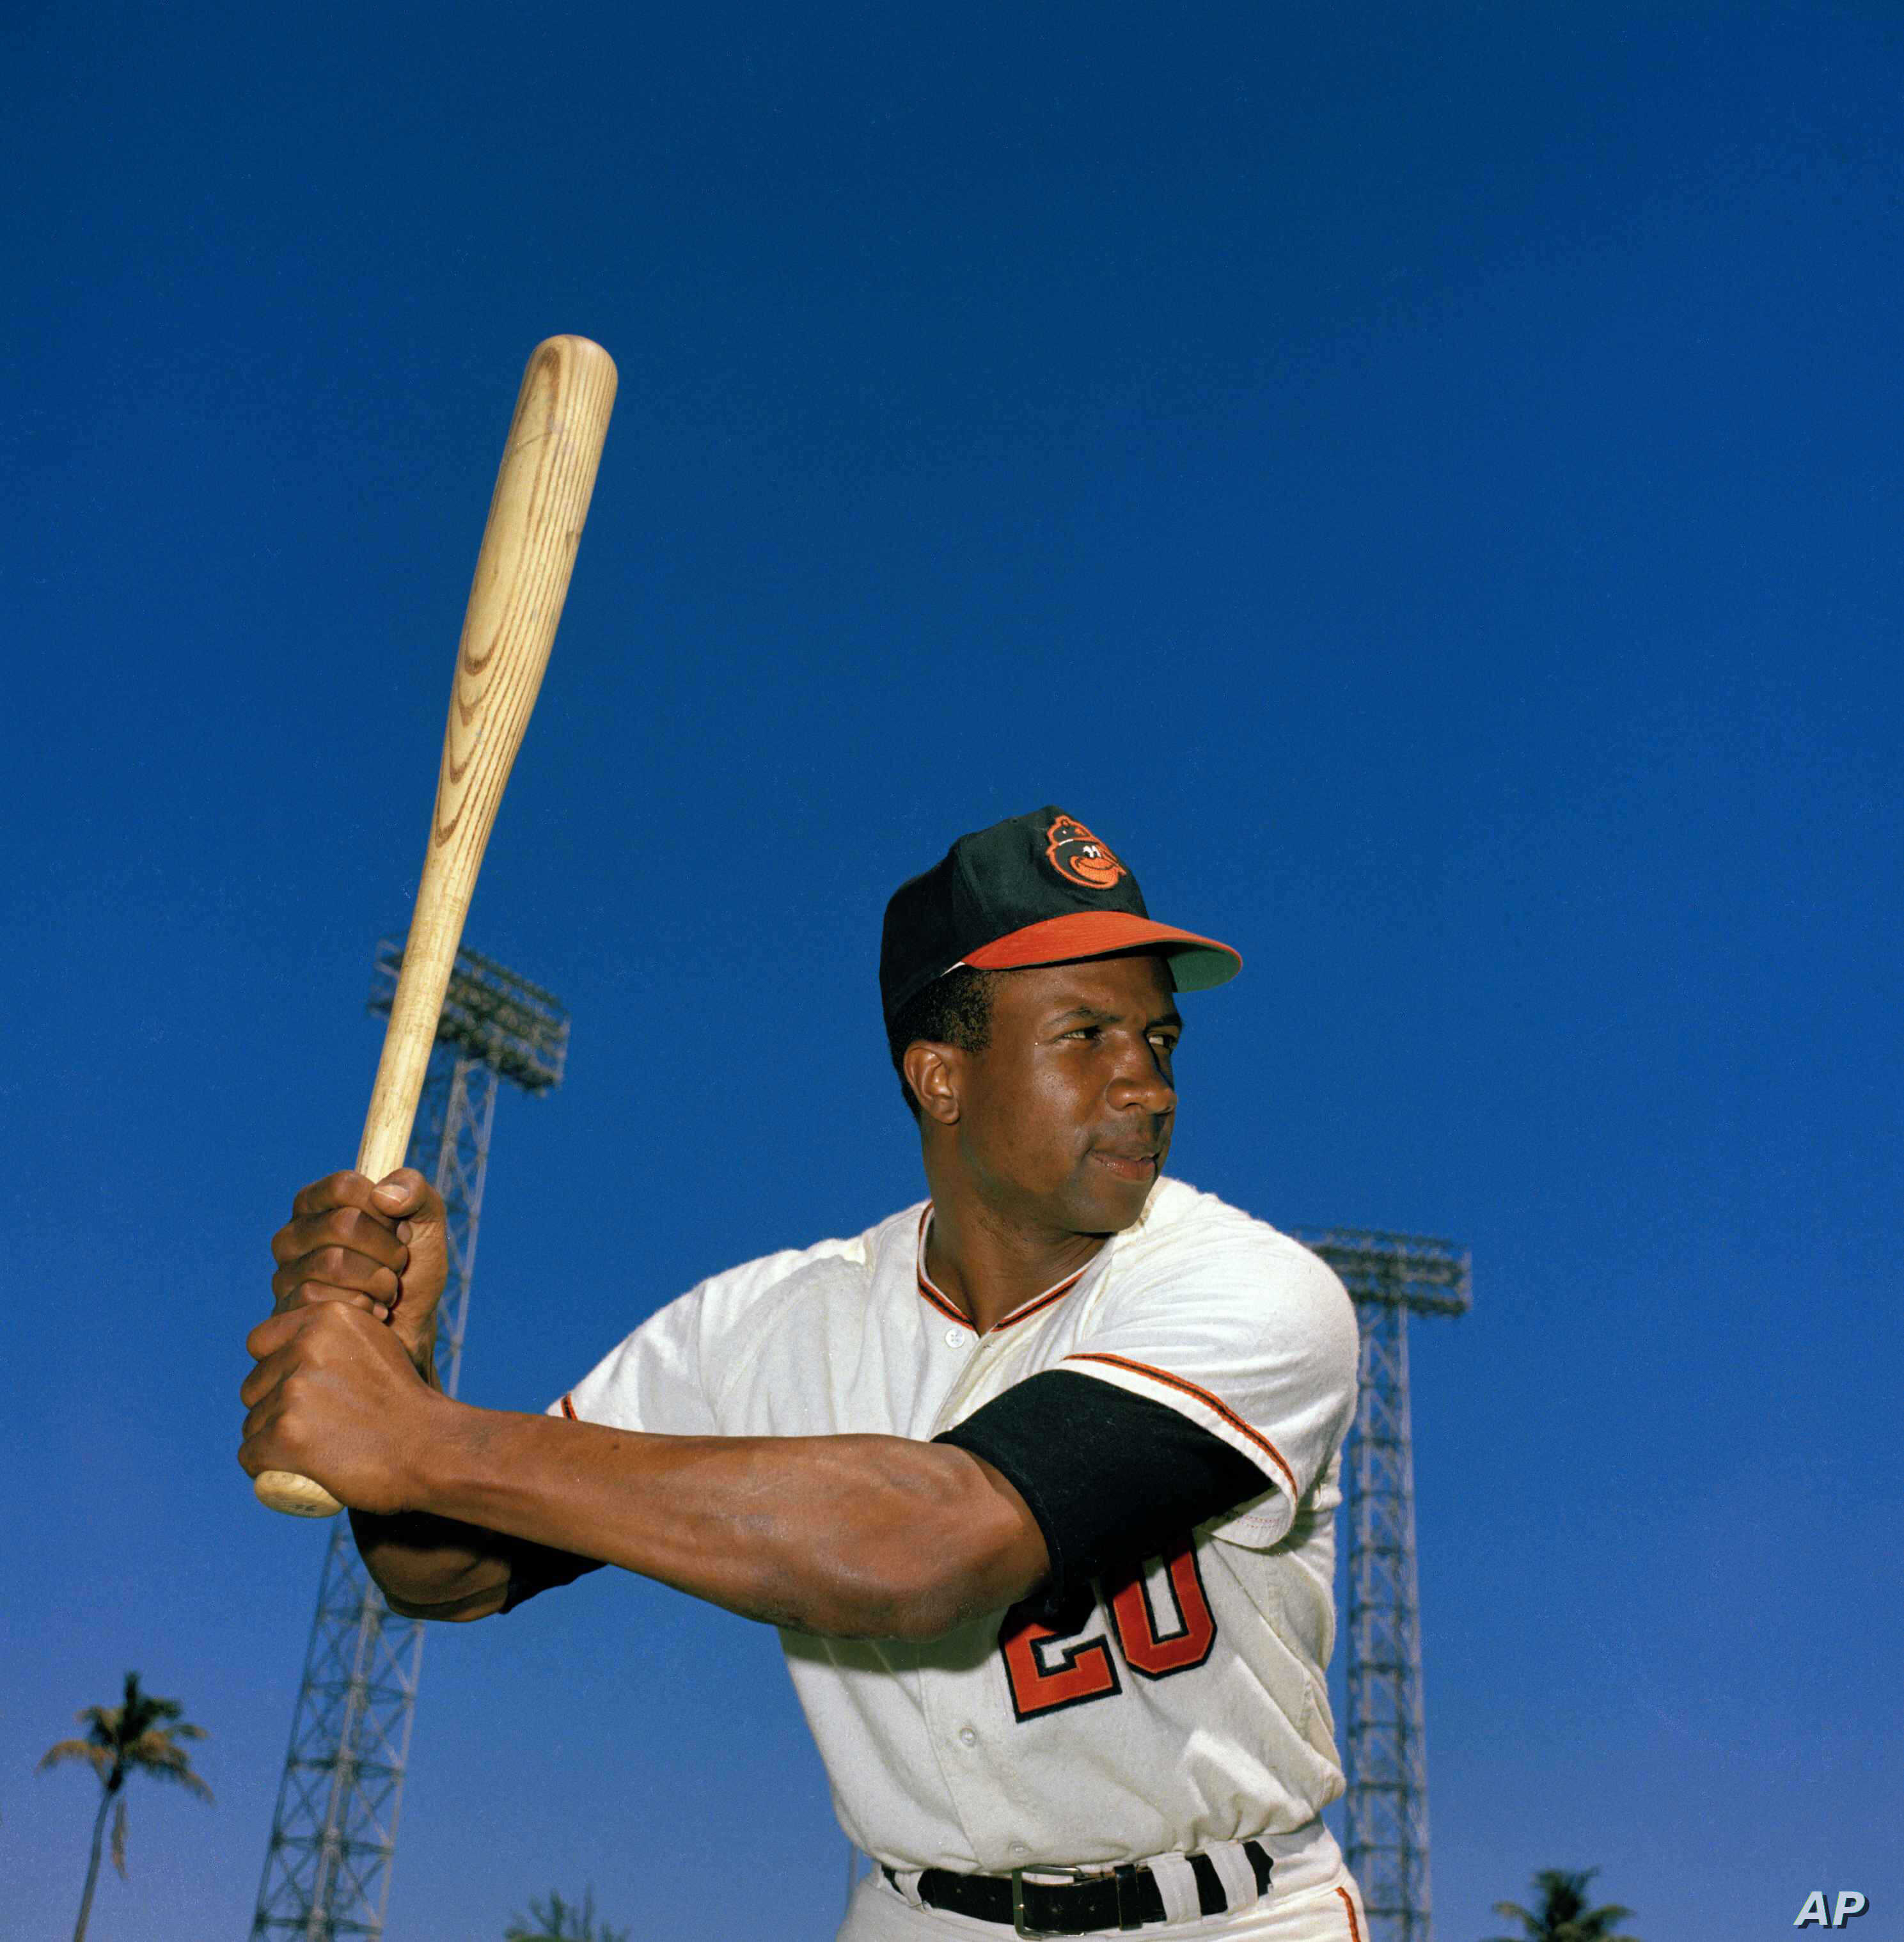 Outfielder Frank Robinson of the Baltimore Orioles is poses for photo in 1967.